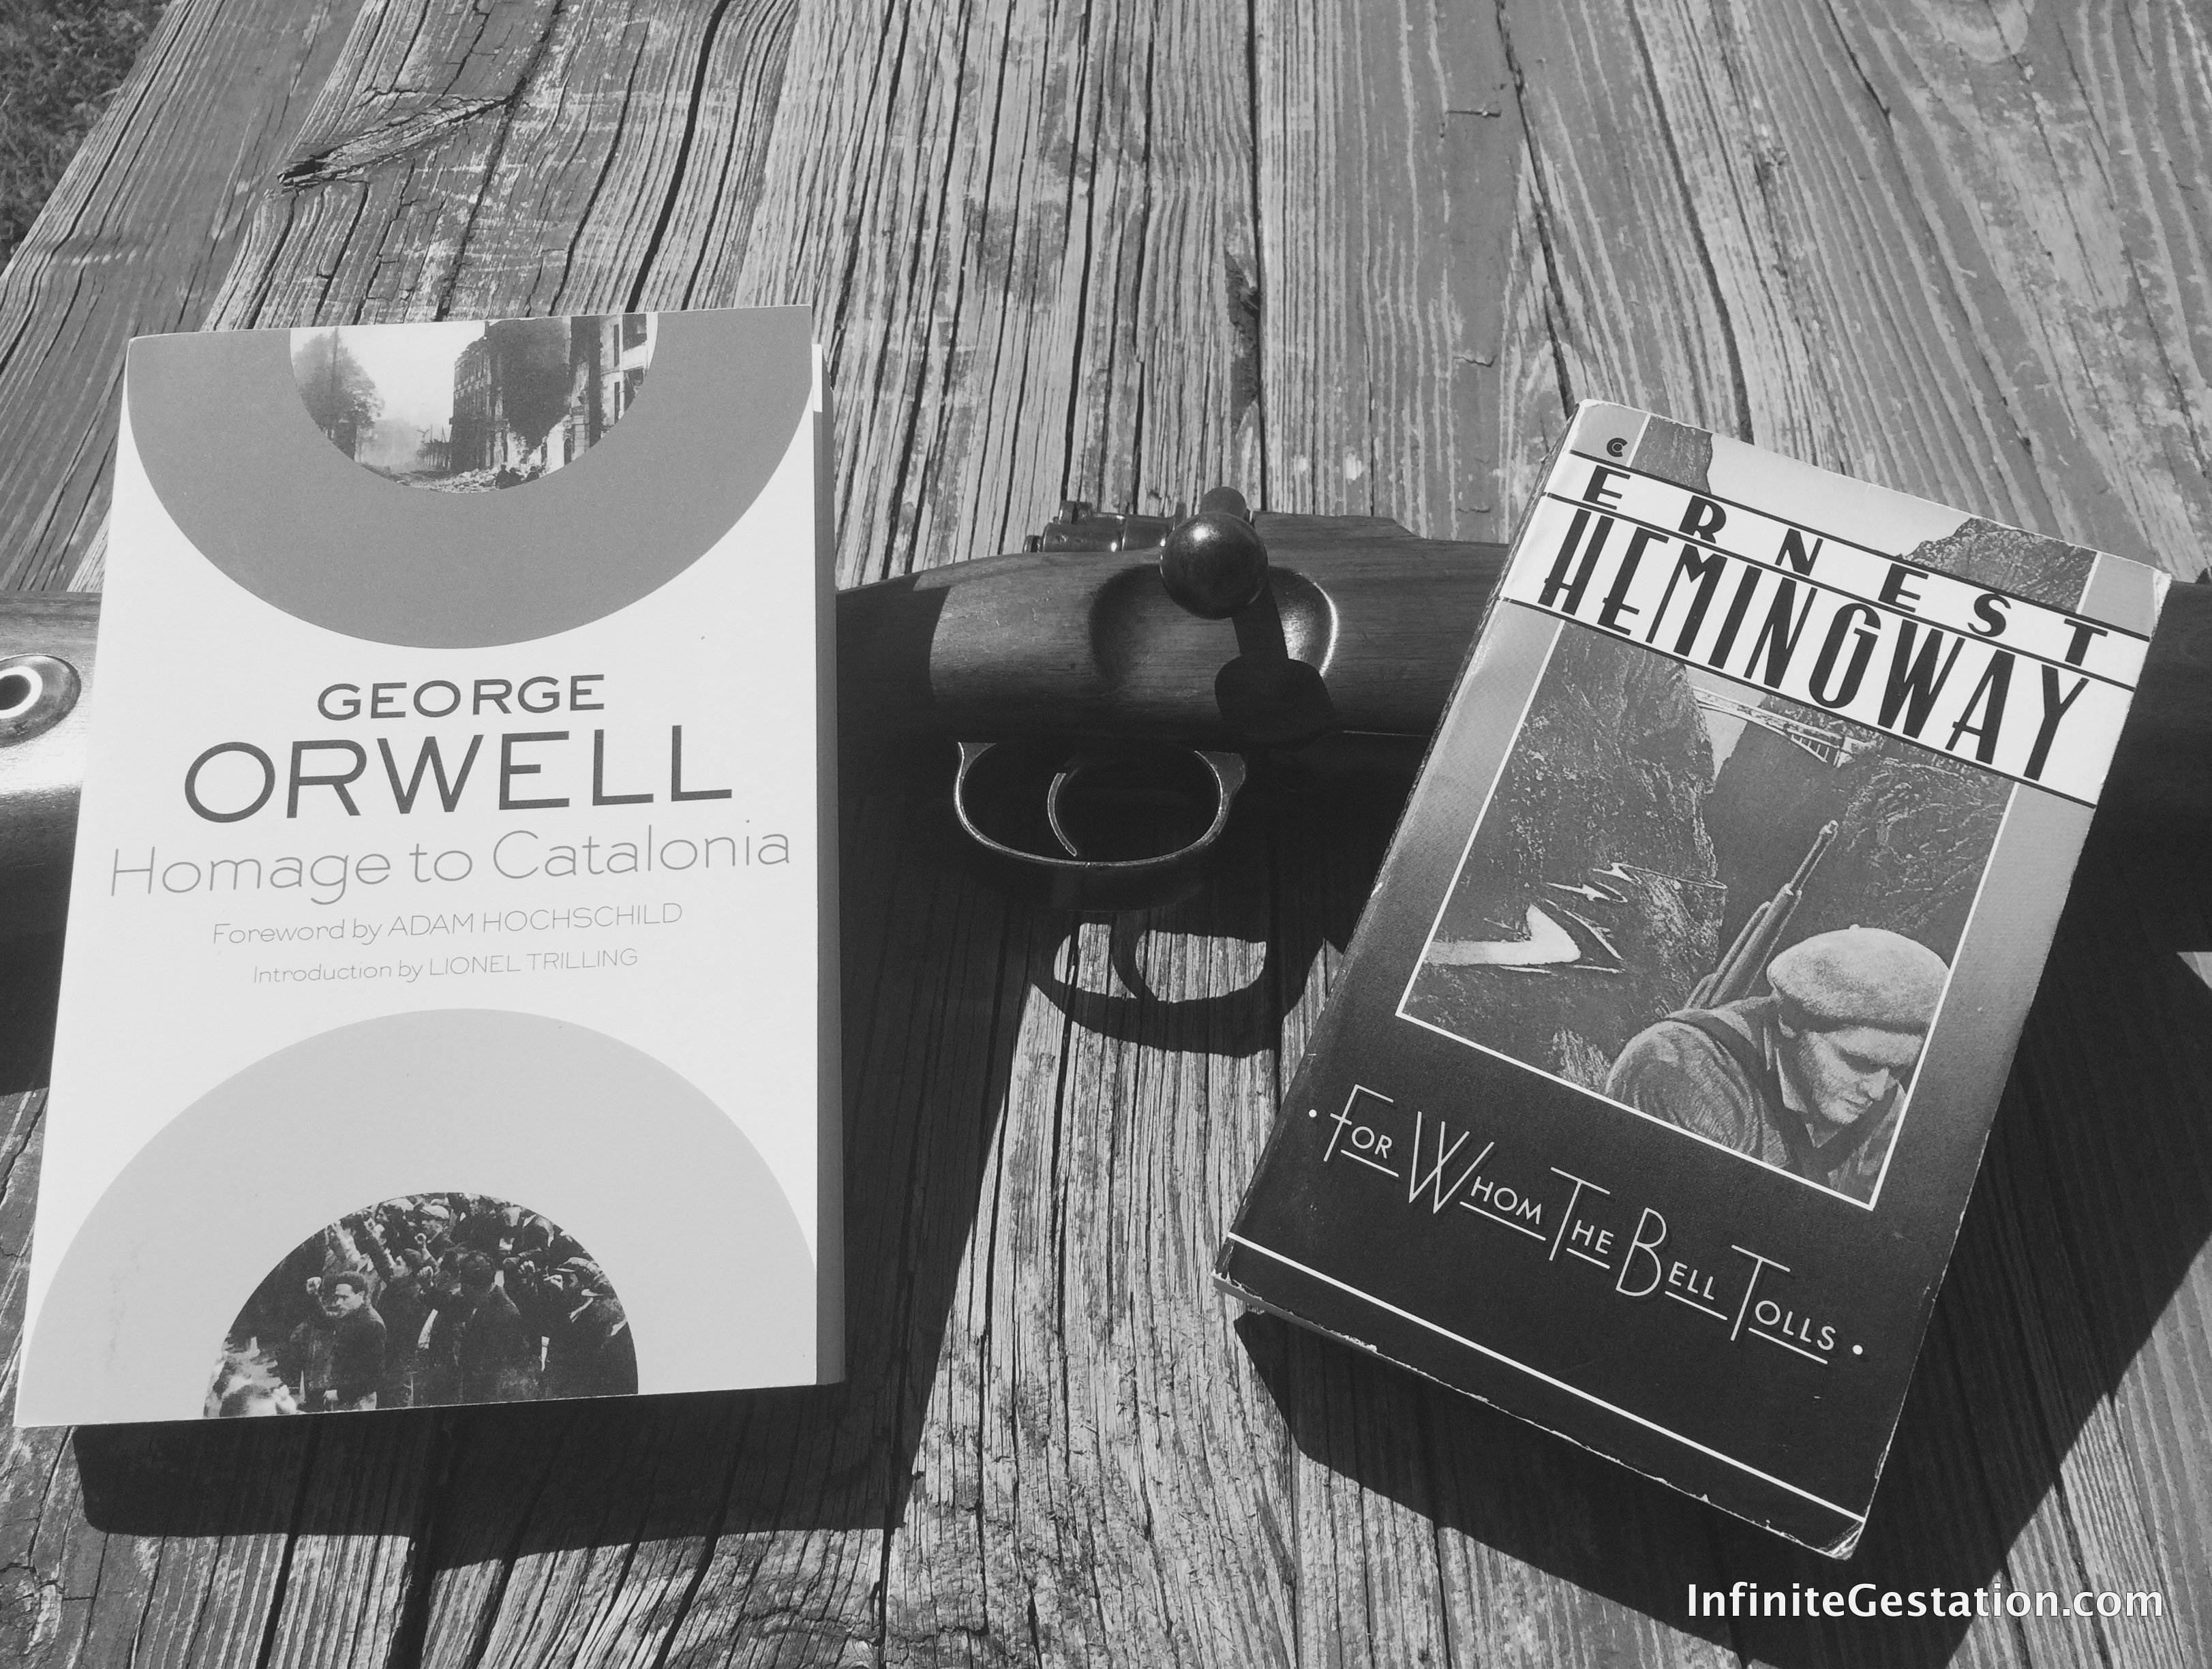 george orwell spanish civil war essay / eric hobsbawm: intellectuals and the spanish civil war eric hobsbawm: intellectuals and the spanish civil war i george orwell's homage to catalonia.